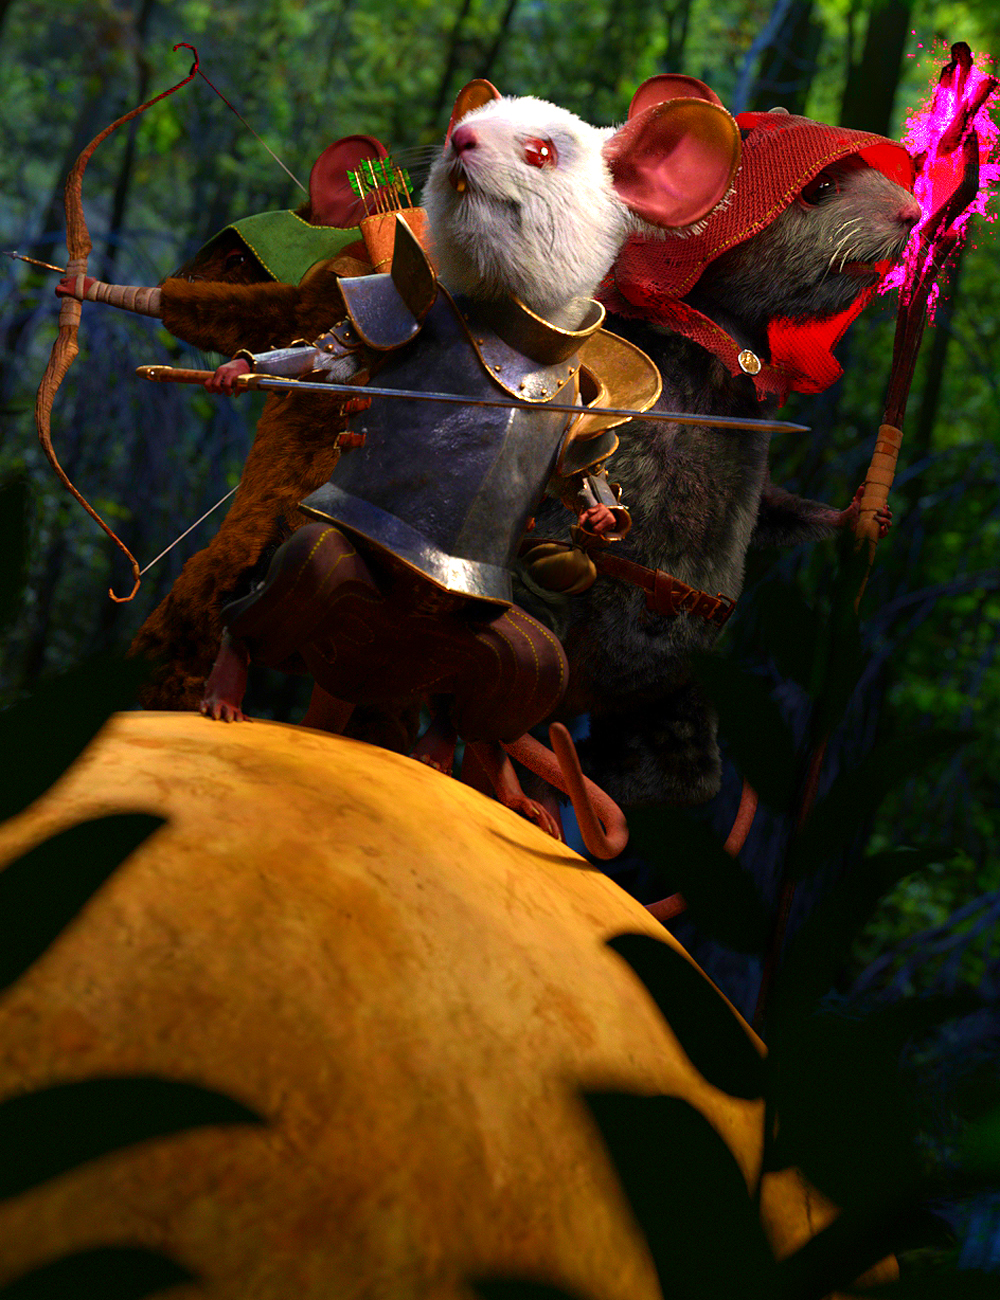 Storybook Mouse for Genesis 8.1 Males by: JoeQuick, 3D Models by Daz 3D